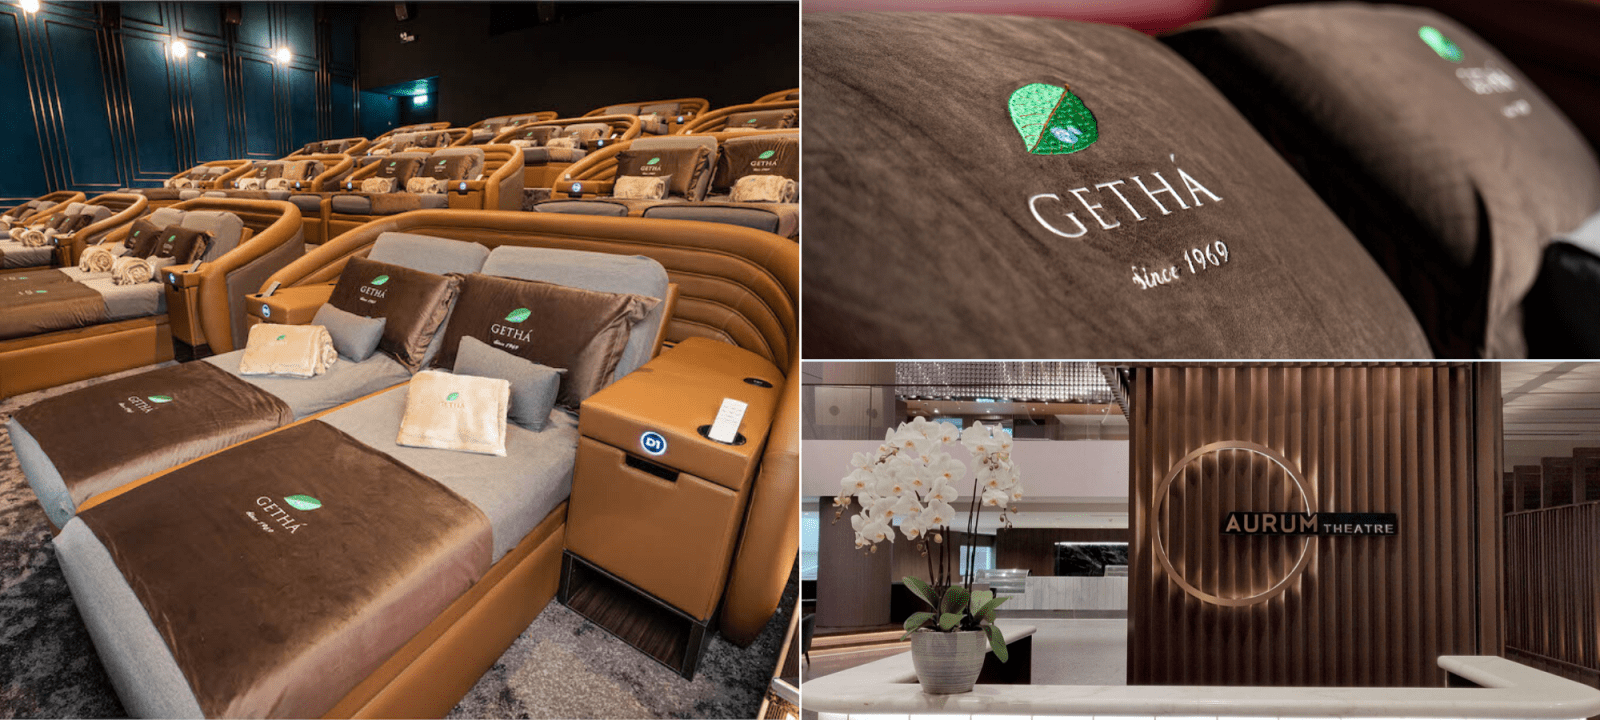 GSC's Aurum Theatre is Bringing A Luxurious Cinematic Experience